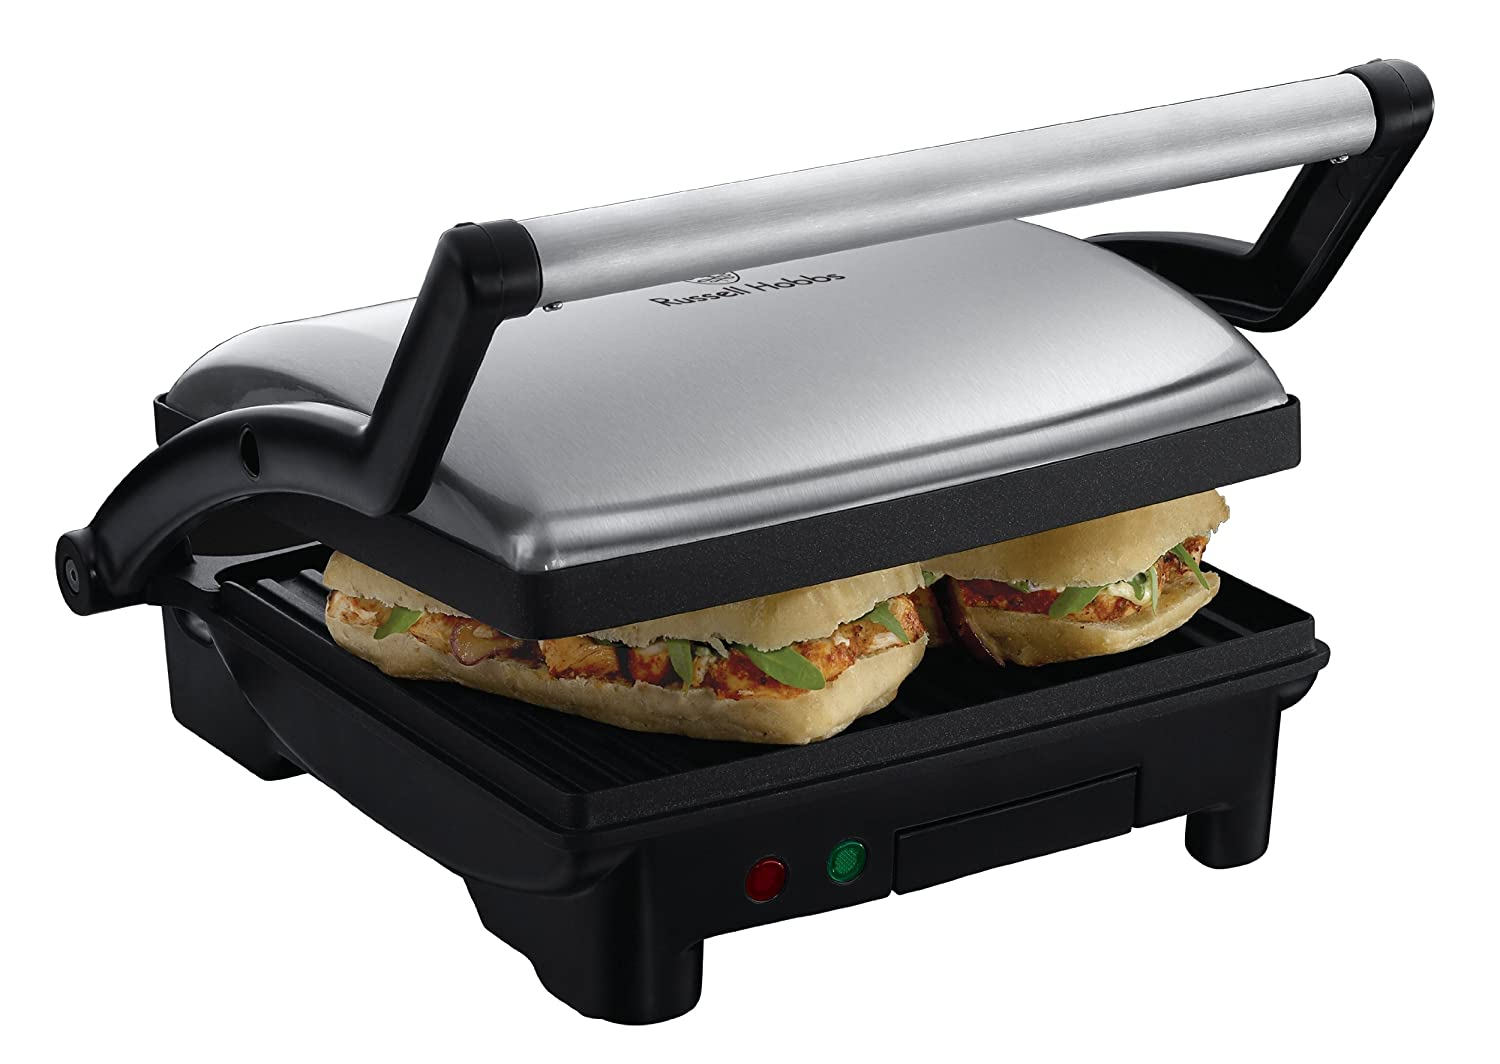 The Russell Hobbs 17888 is a bargain at £25 and makes some very tasty Panini's.